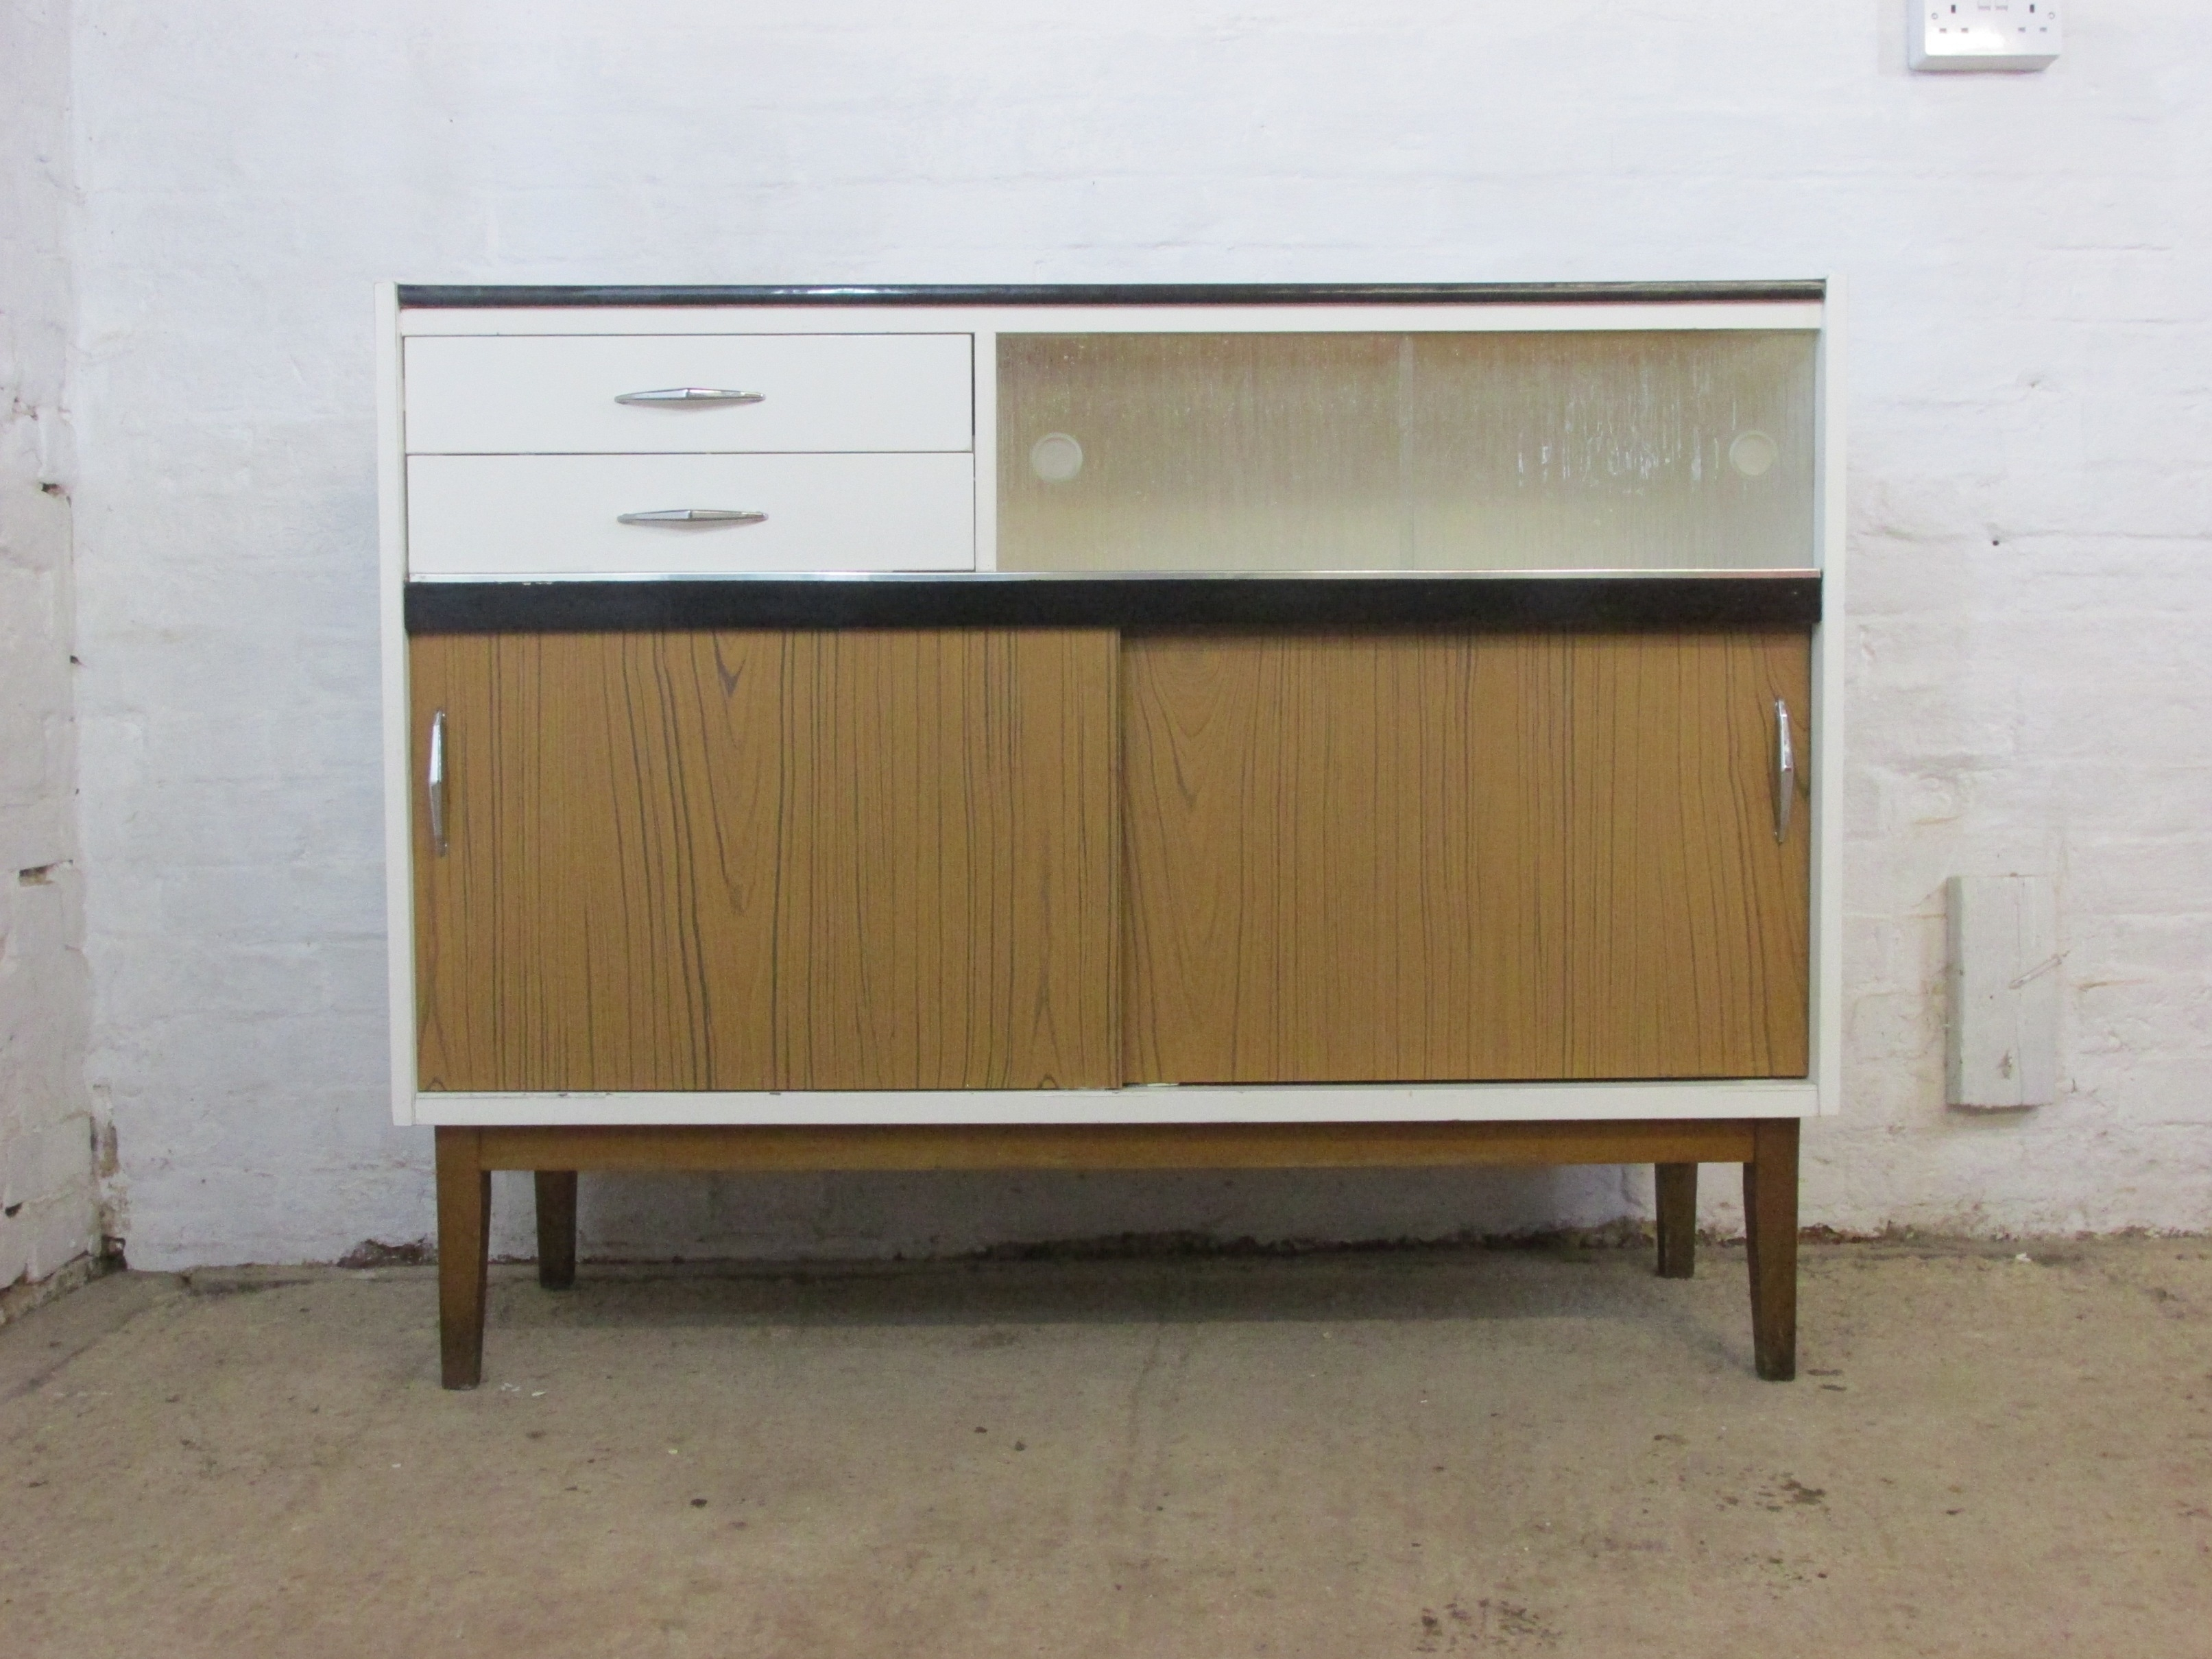 Retro Fortress Wood, Glass And Laminate Small Sideboard Or Kitchen Pertaining To Most Recent Vintage 8 Glass Sideboards (View 17 of 20)